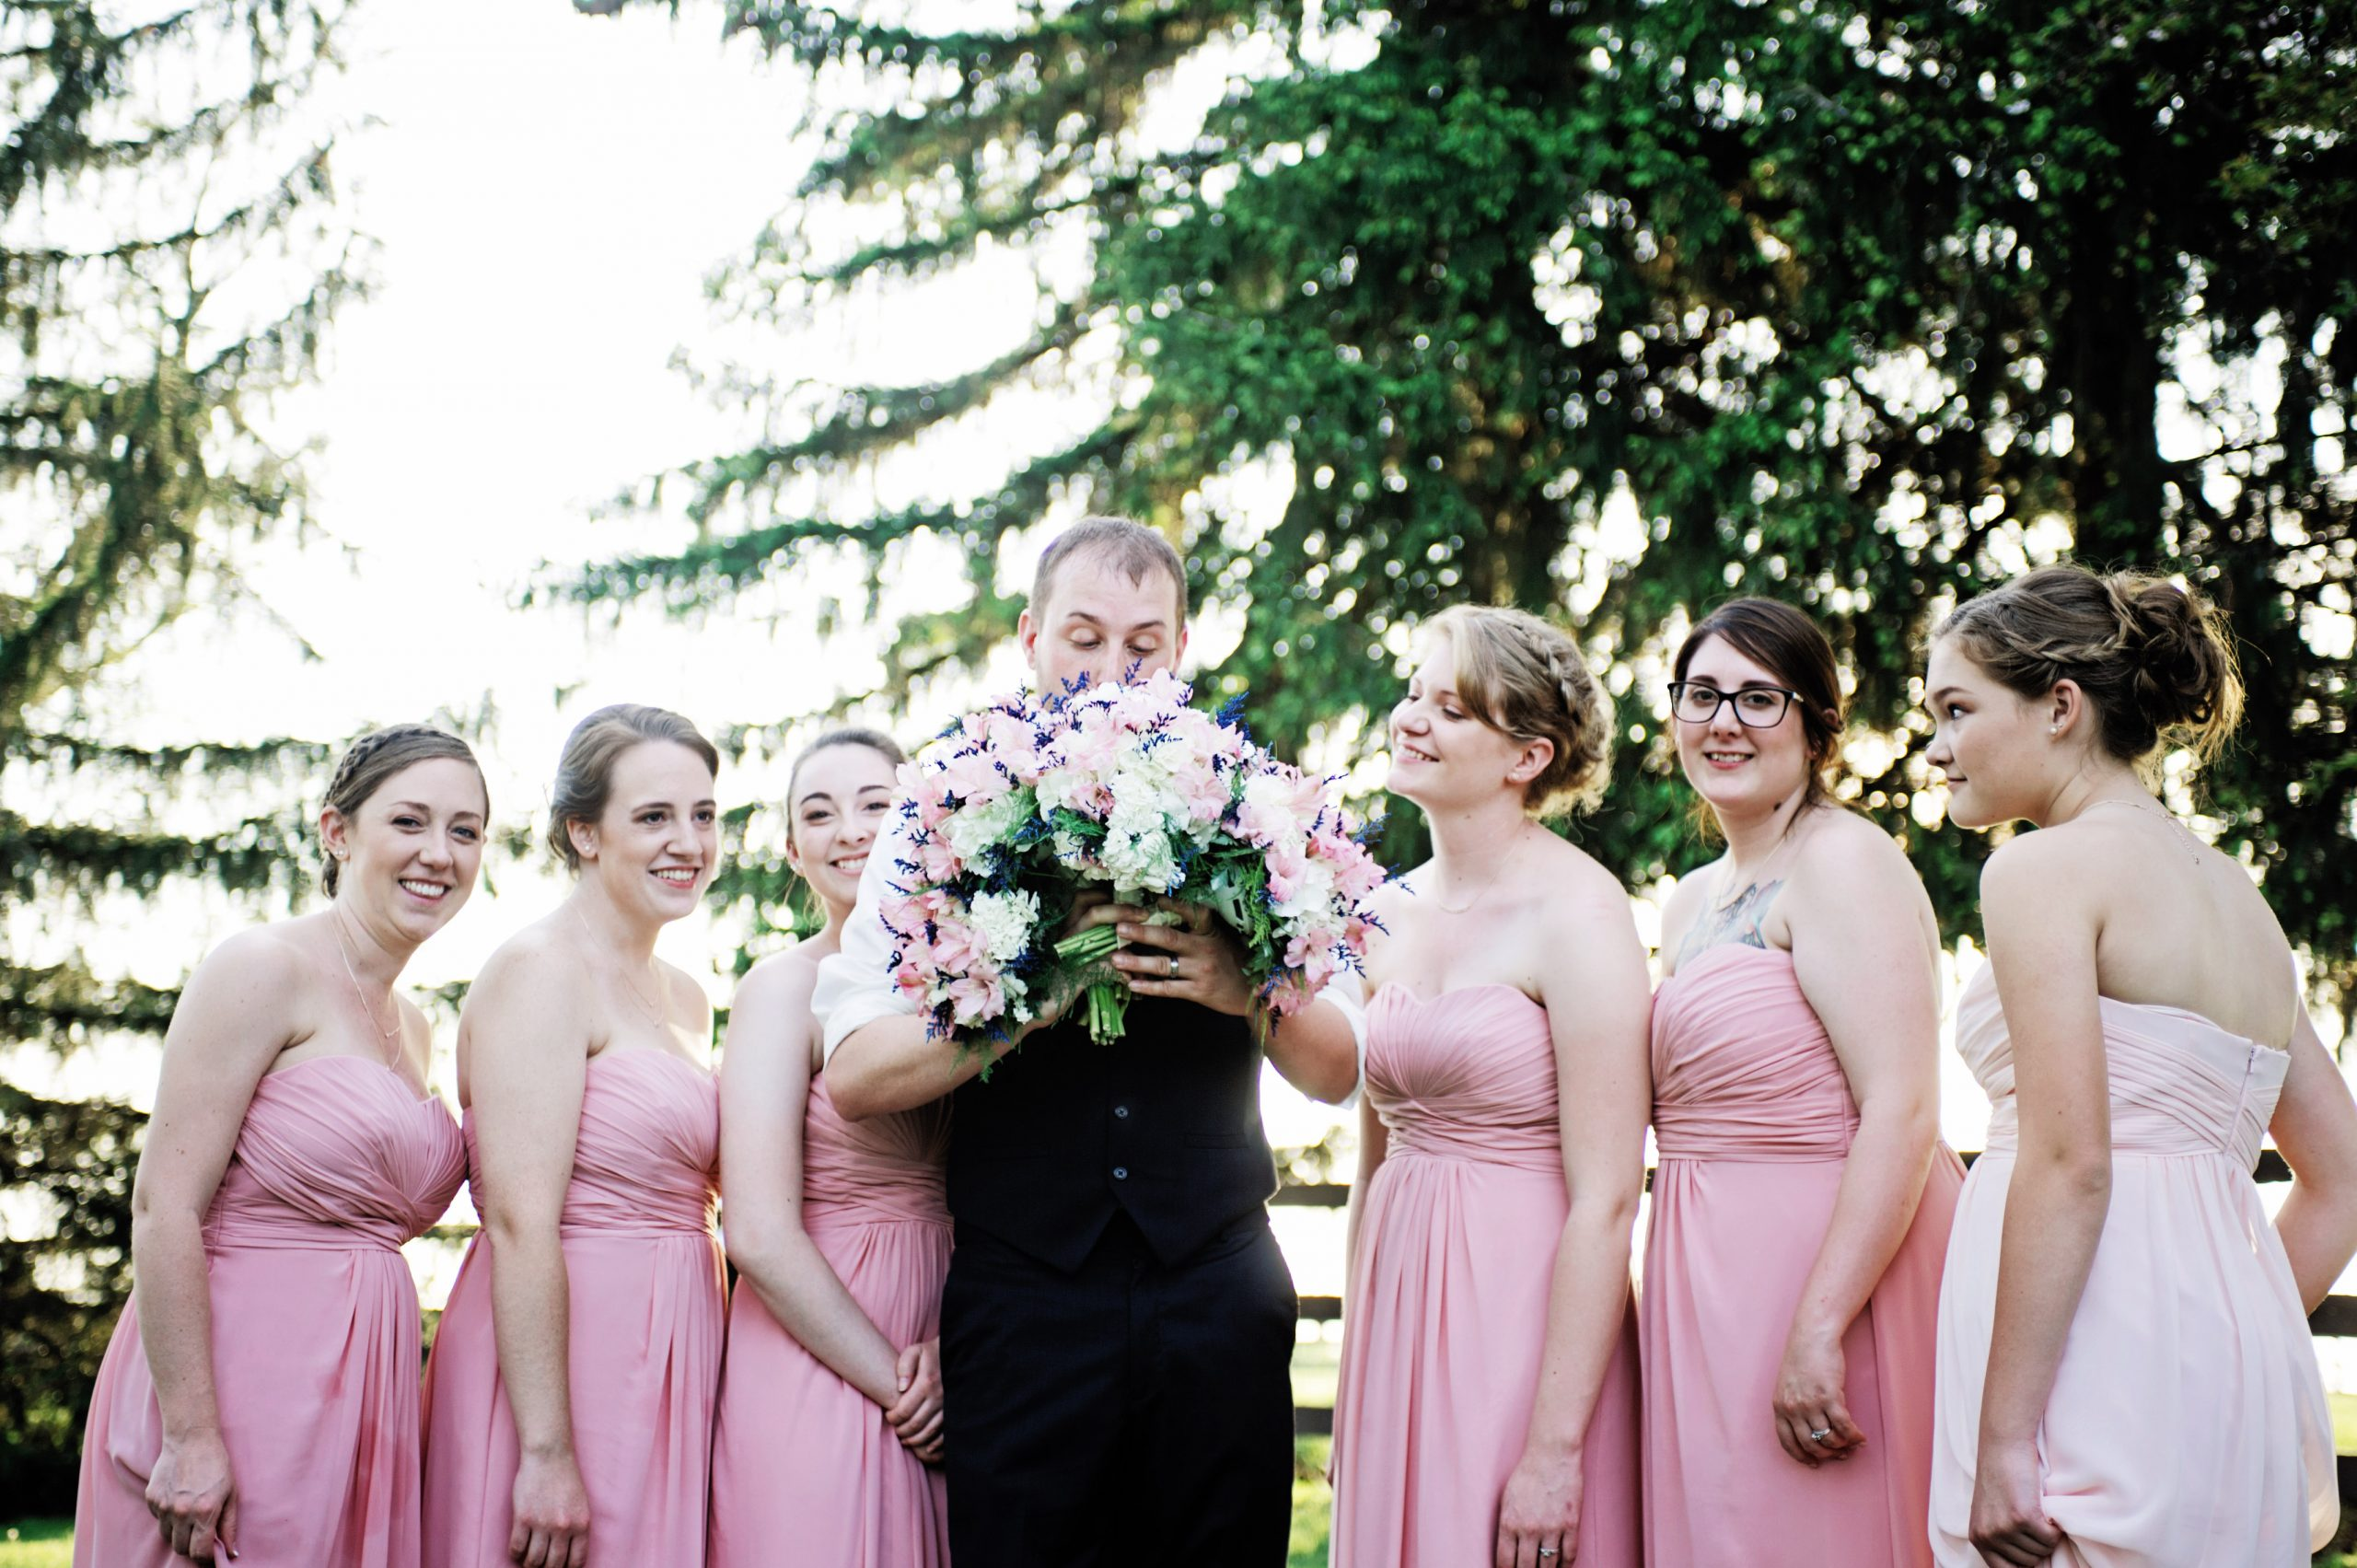 Ricky, along with Kady's bridesmaids, share in a comical photo taken by Lovefusion Photography at Lakeview Farms, York, PA. Featured on Dream Weddings.